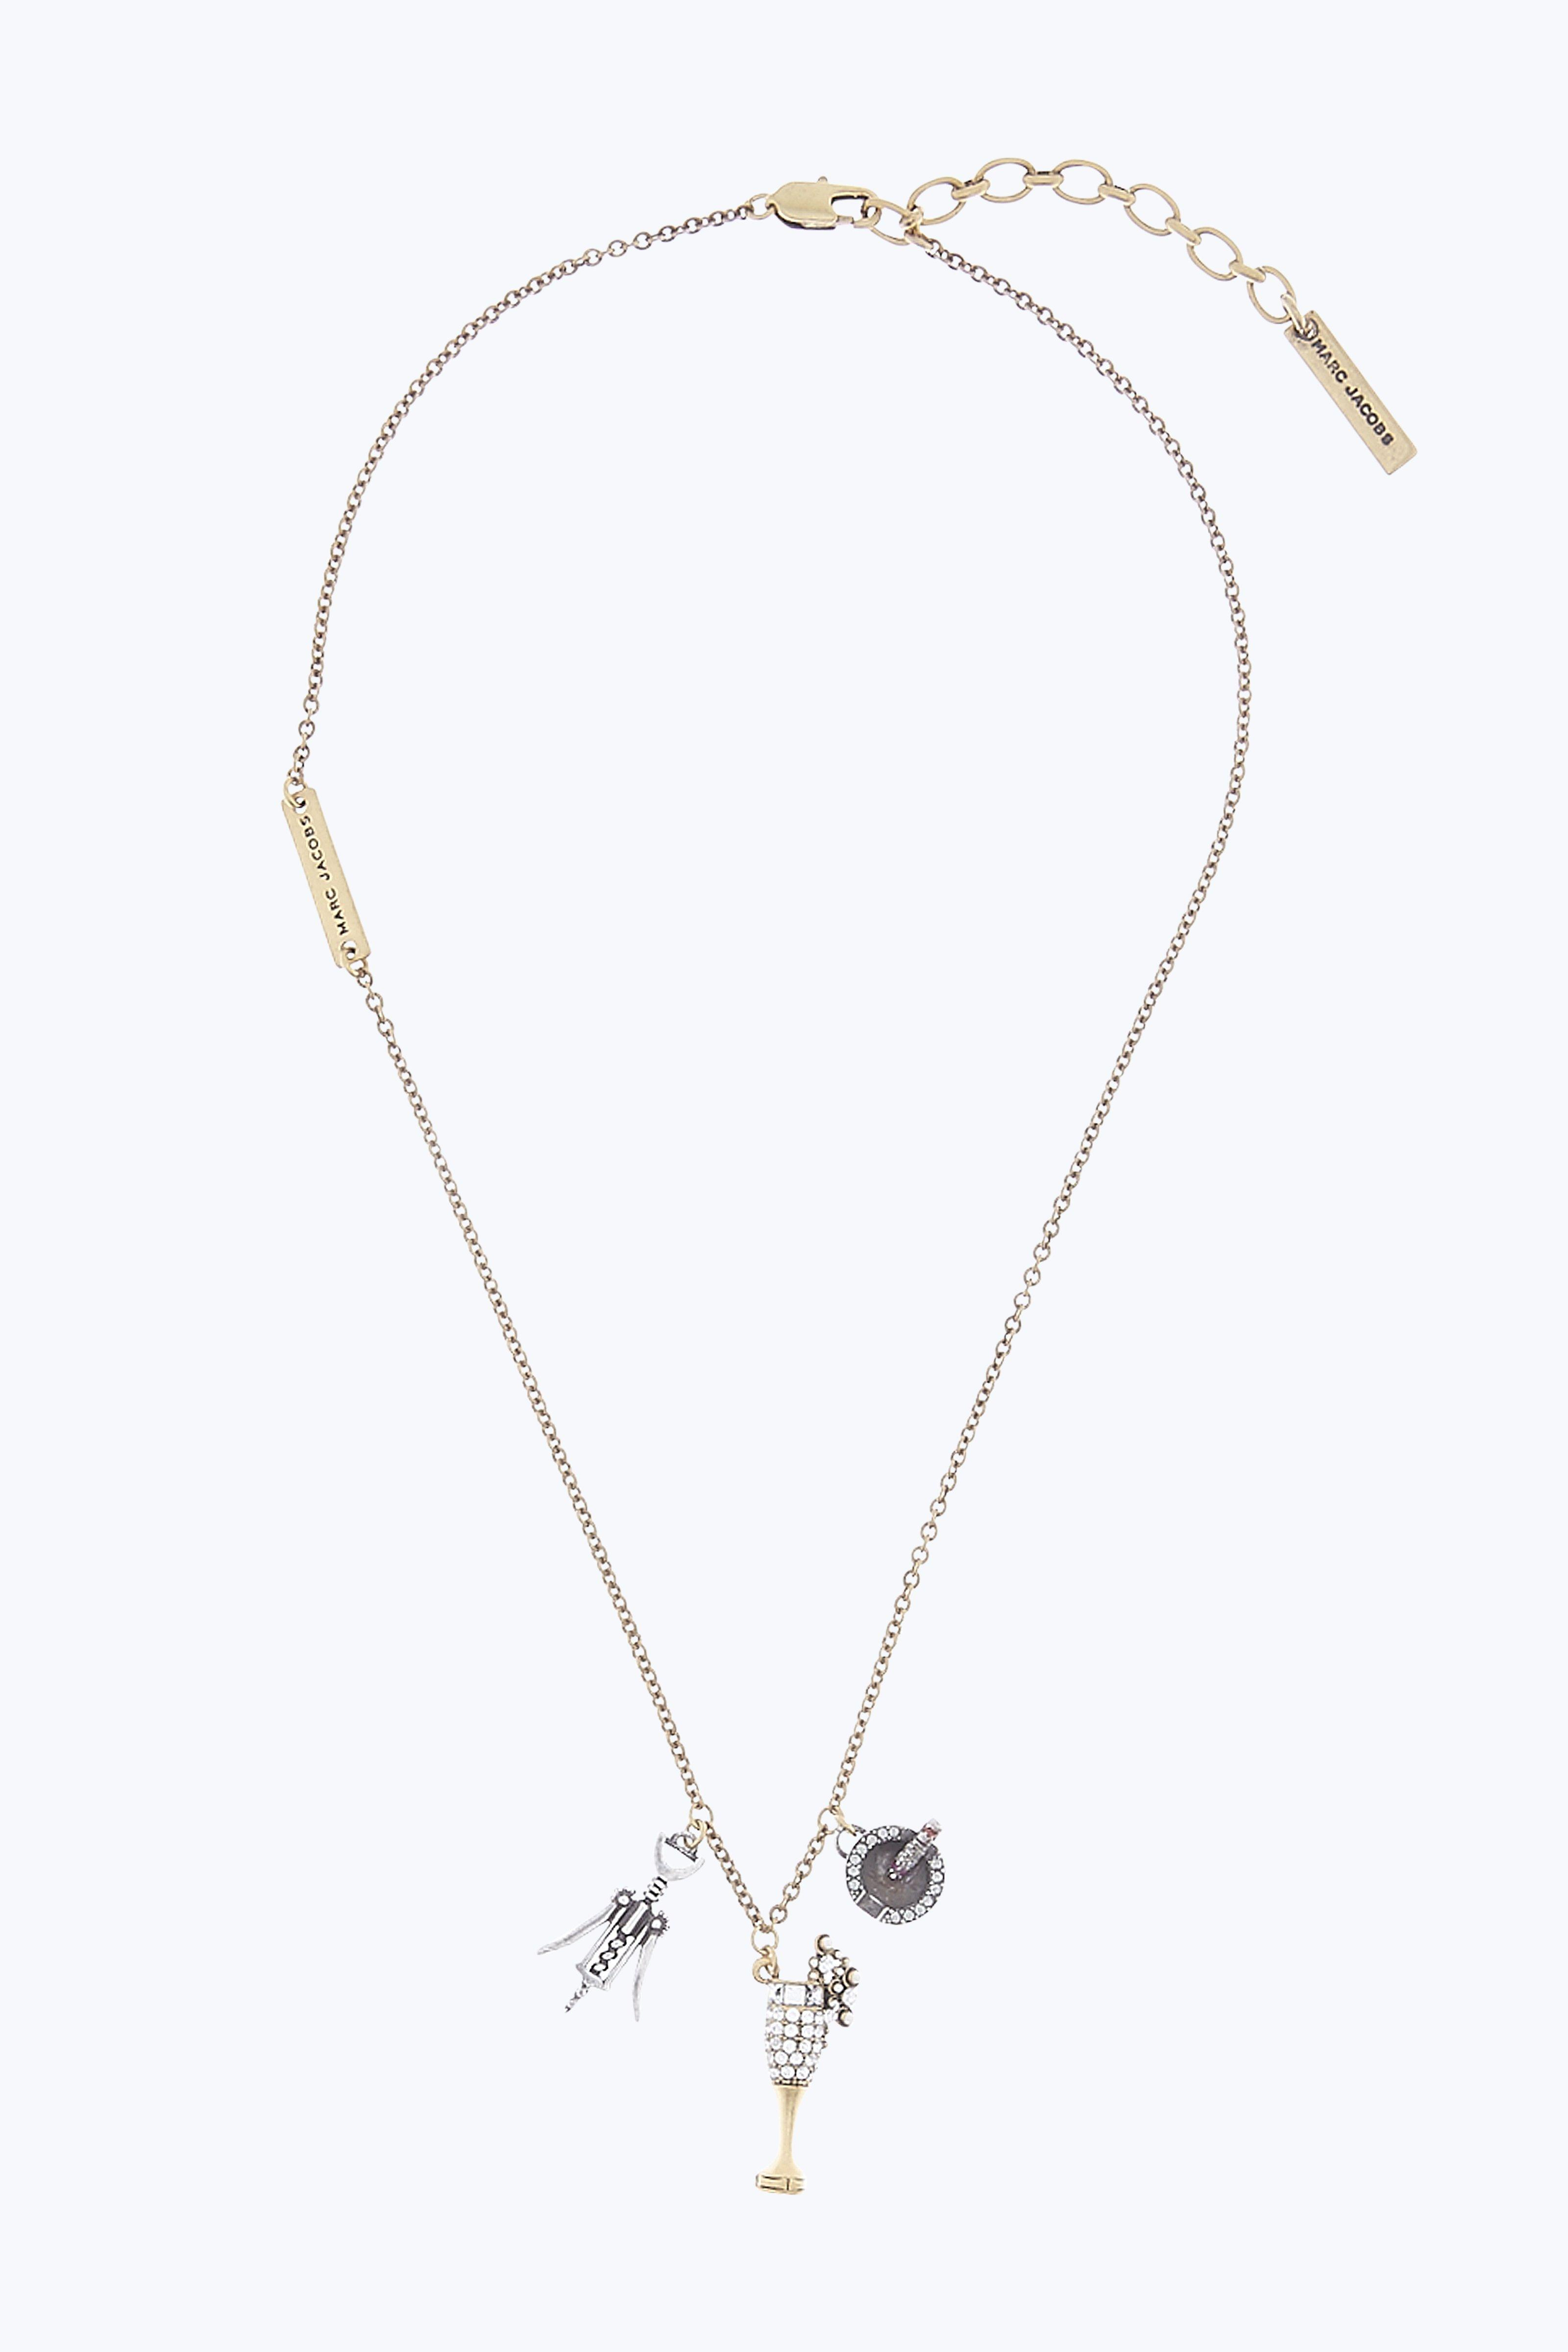 Marc Jacobs Champagne Party Necklace In Antique Gold